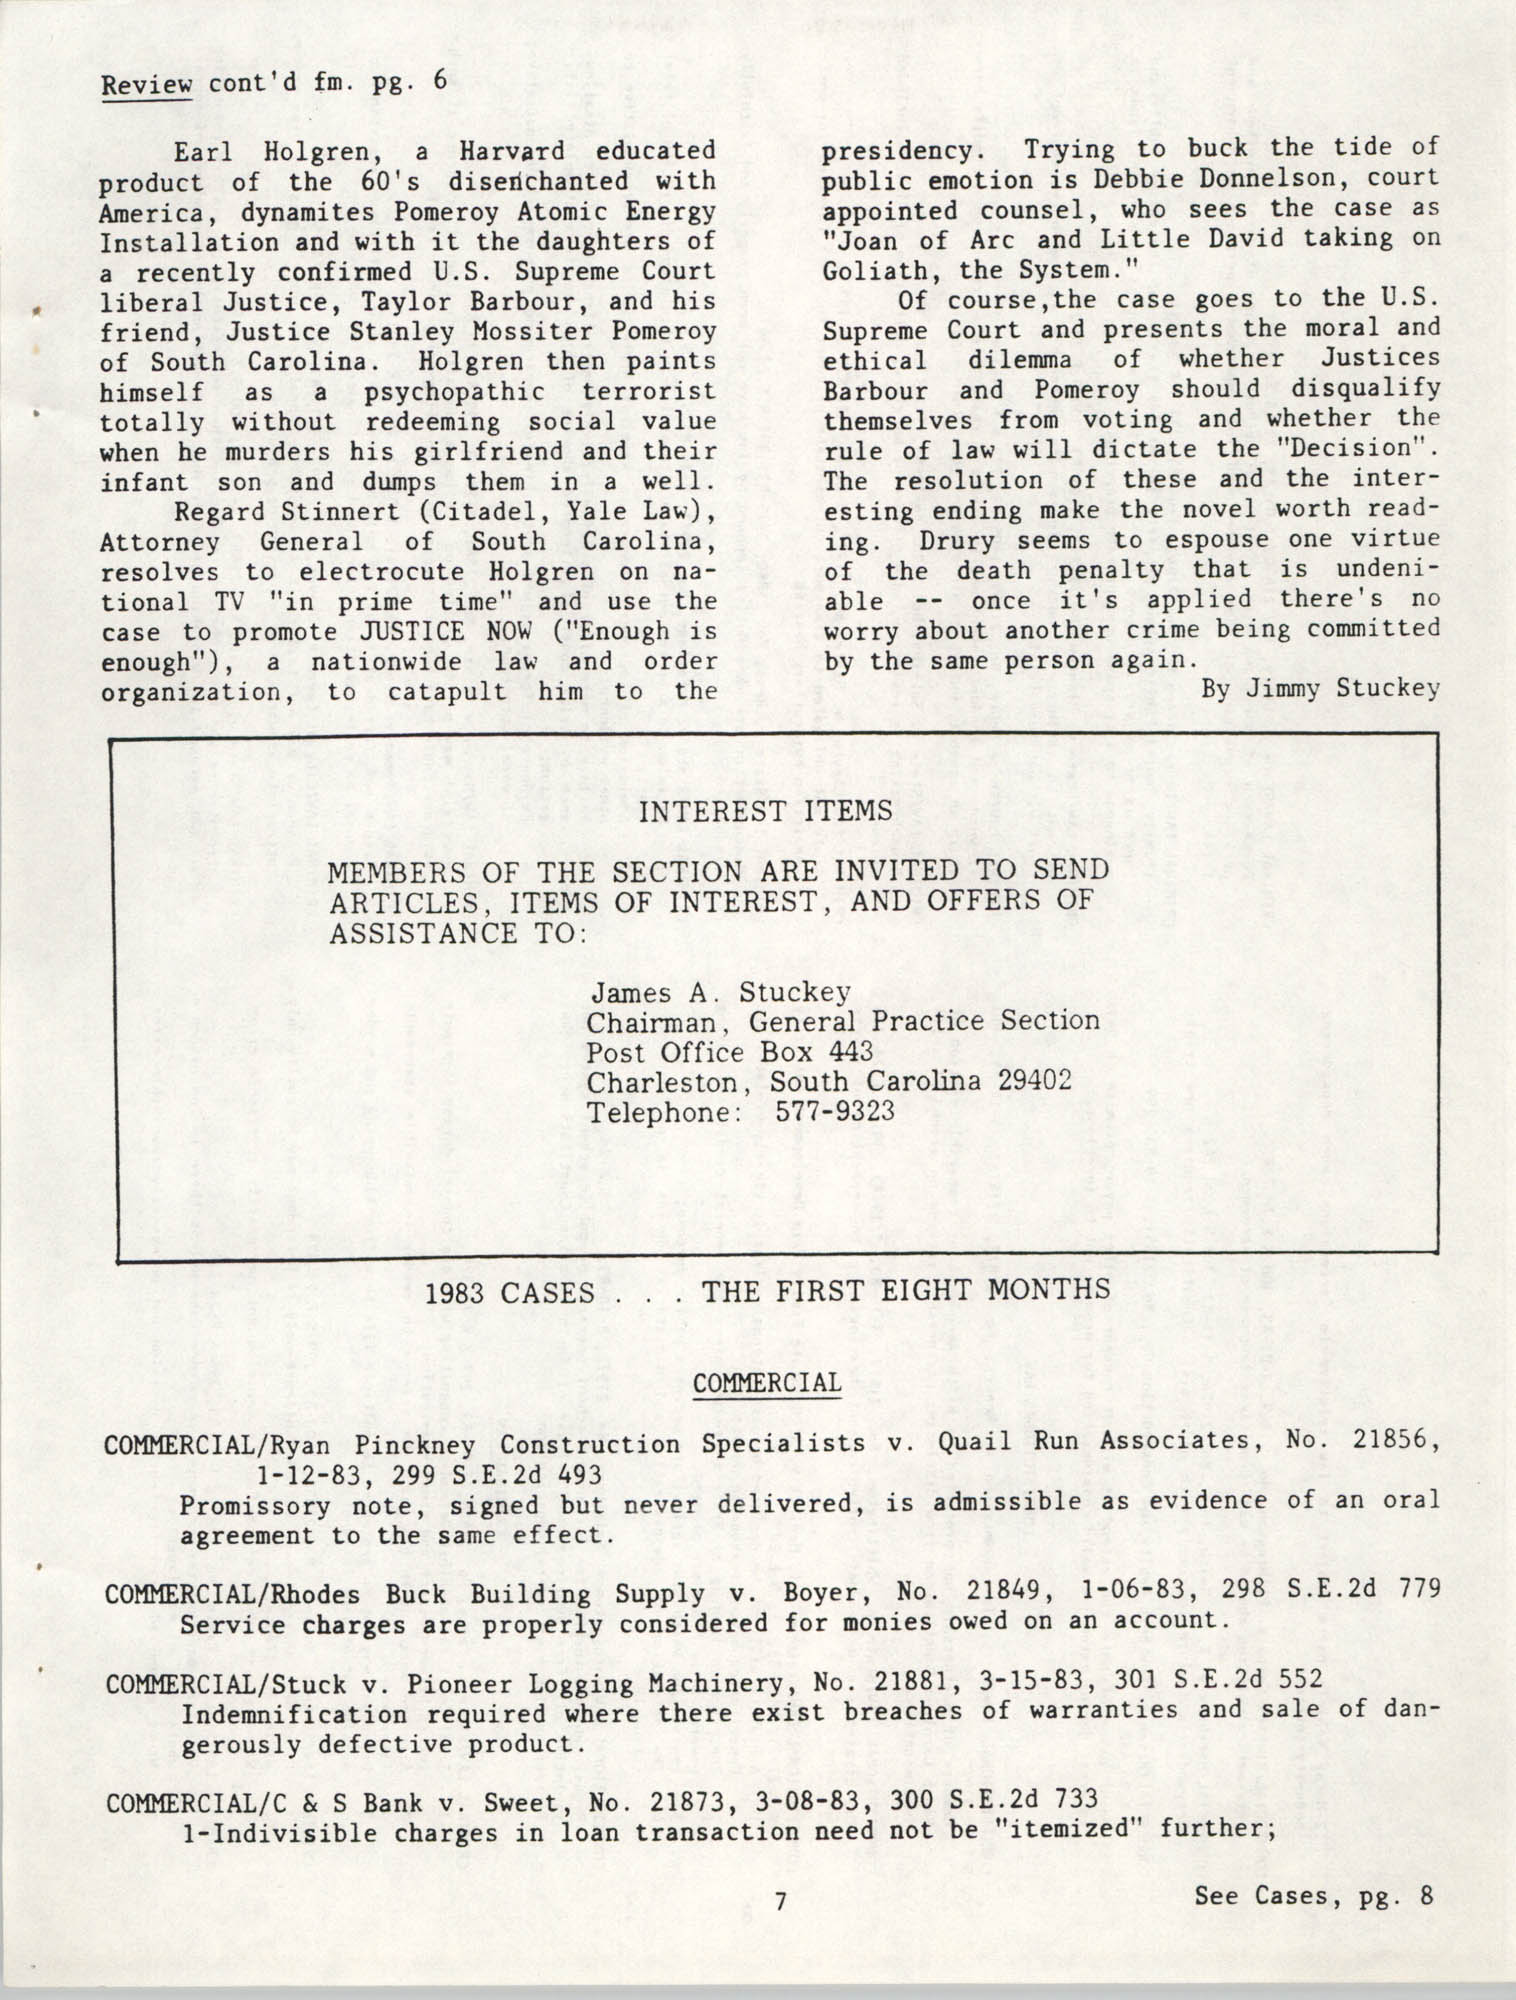 The General Practice Section Update, Vol. 1 No. 1, South Carolina Bar, November 1983, Page 7